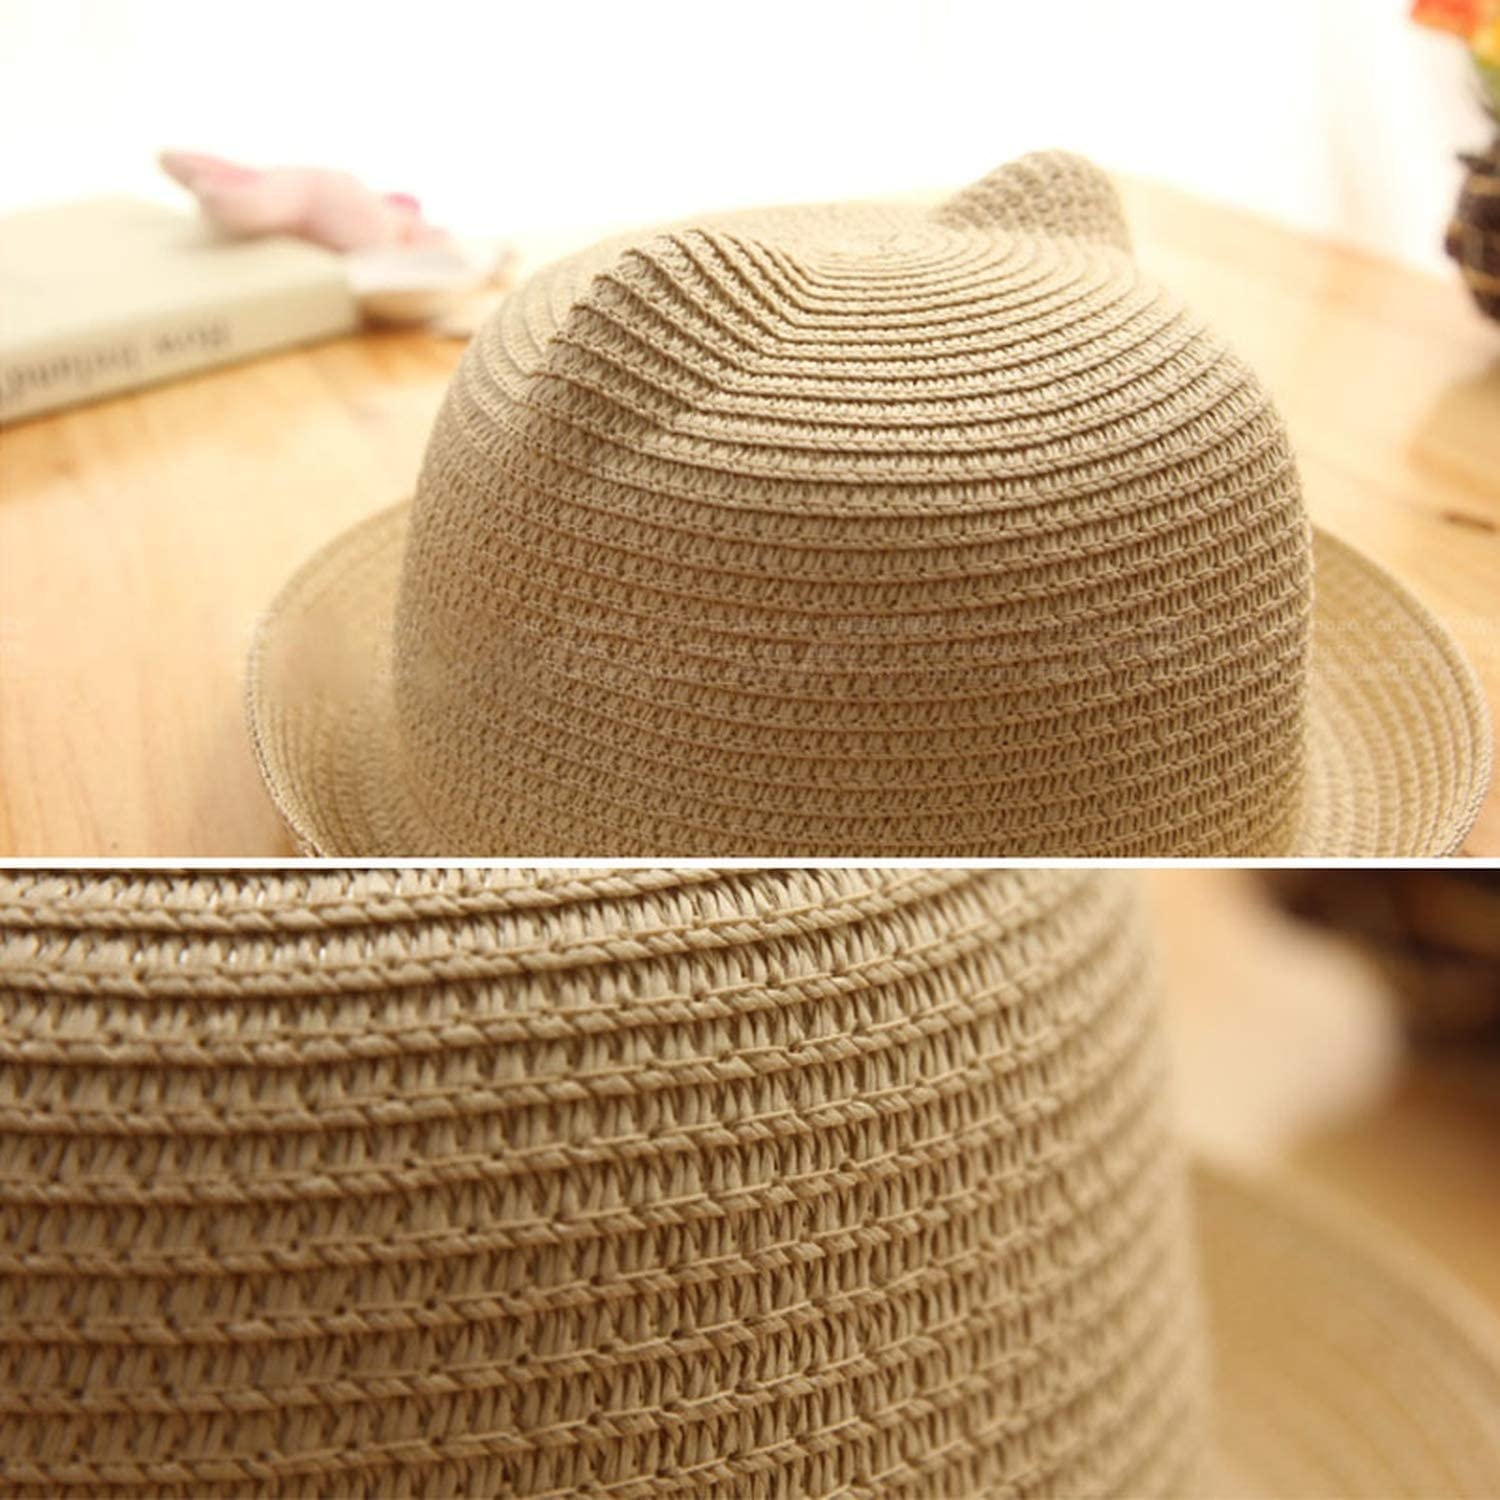 2019 Baby Straw Hat Summer Kids Cute Cat Ear Shape Solid Beach Sunhat for 2-5 Years Old